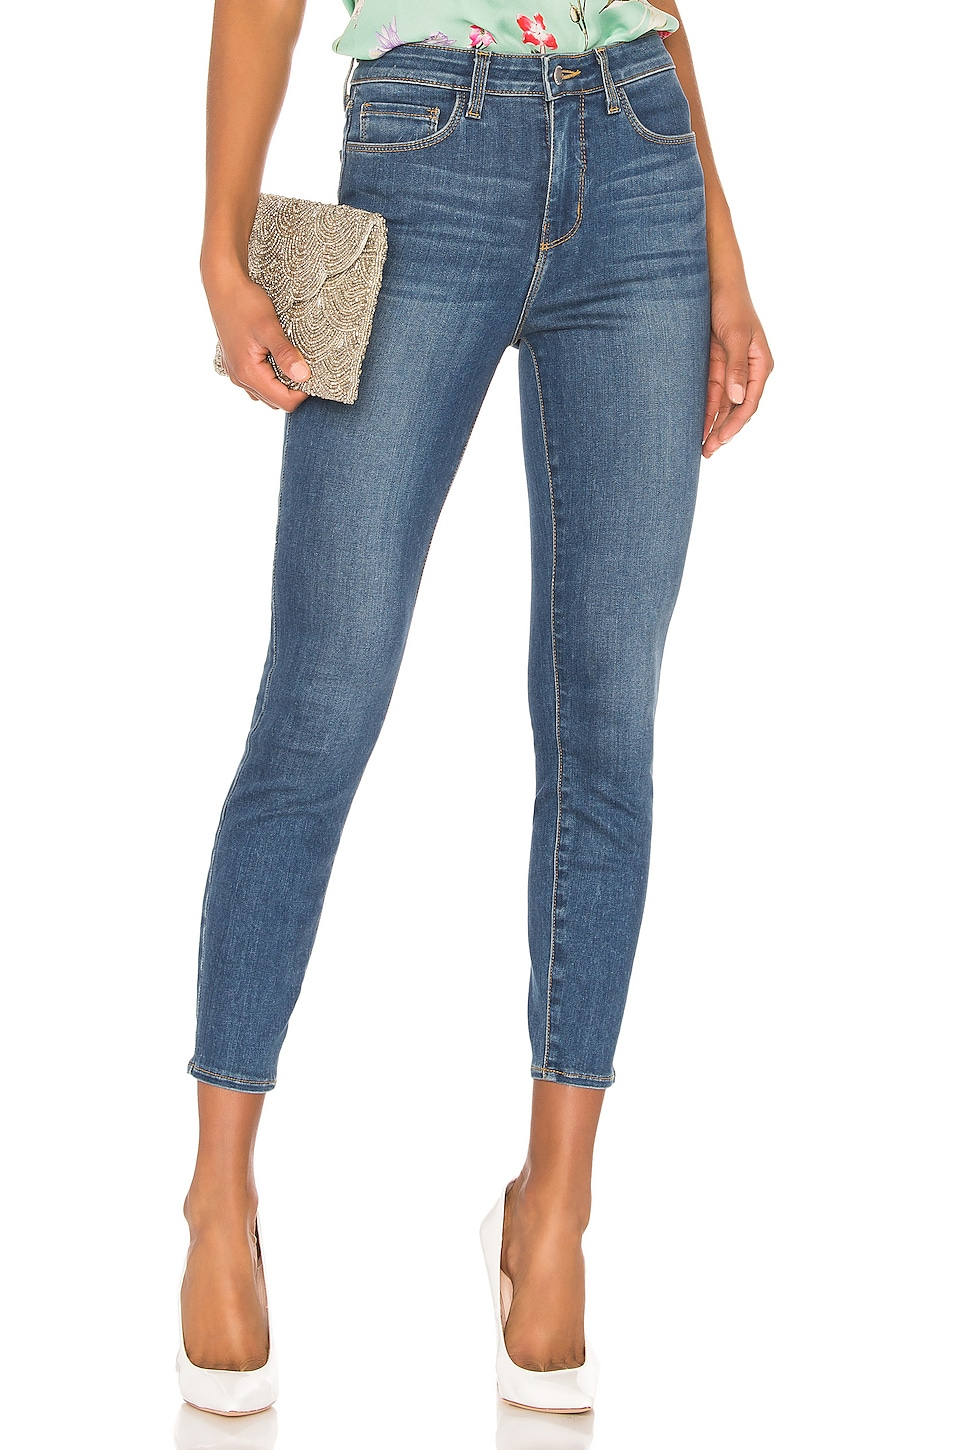 L'AGENCE Margot High Rise Skinny in Neptune